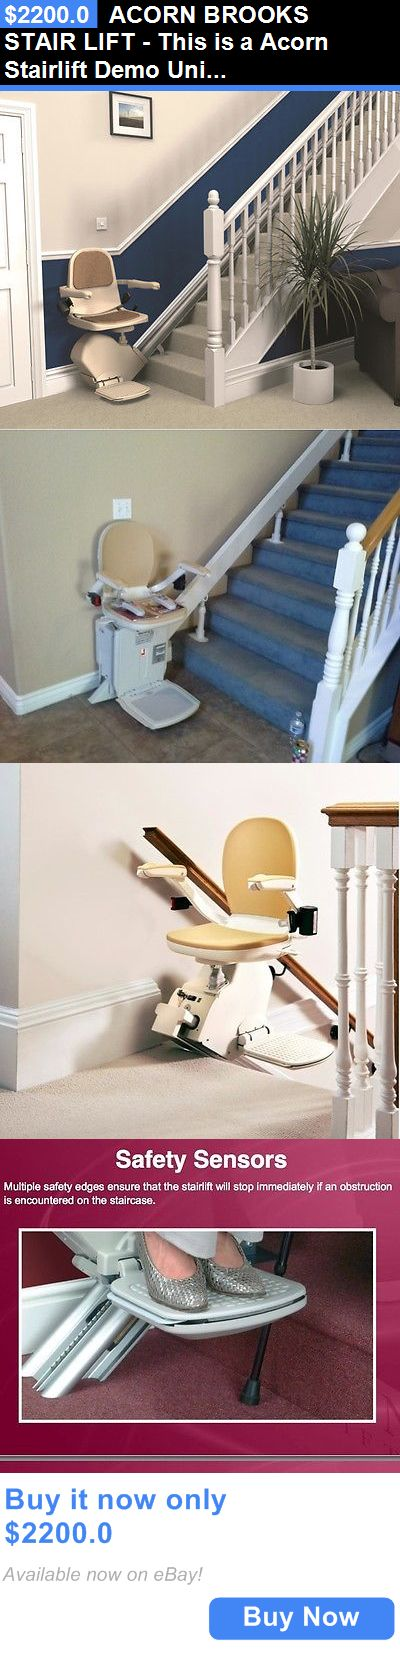 Stairlifts and Elevators: Acorn Brooks Stair Lift - This Is A Acorn Stairlift Demo Unit. Left Hand BUY IT NOW ONLY: $2200.0